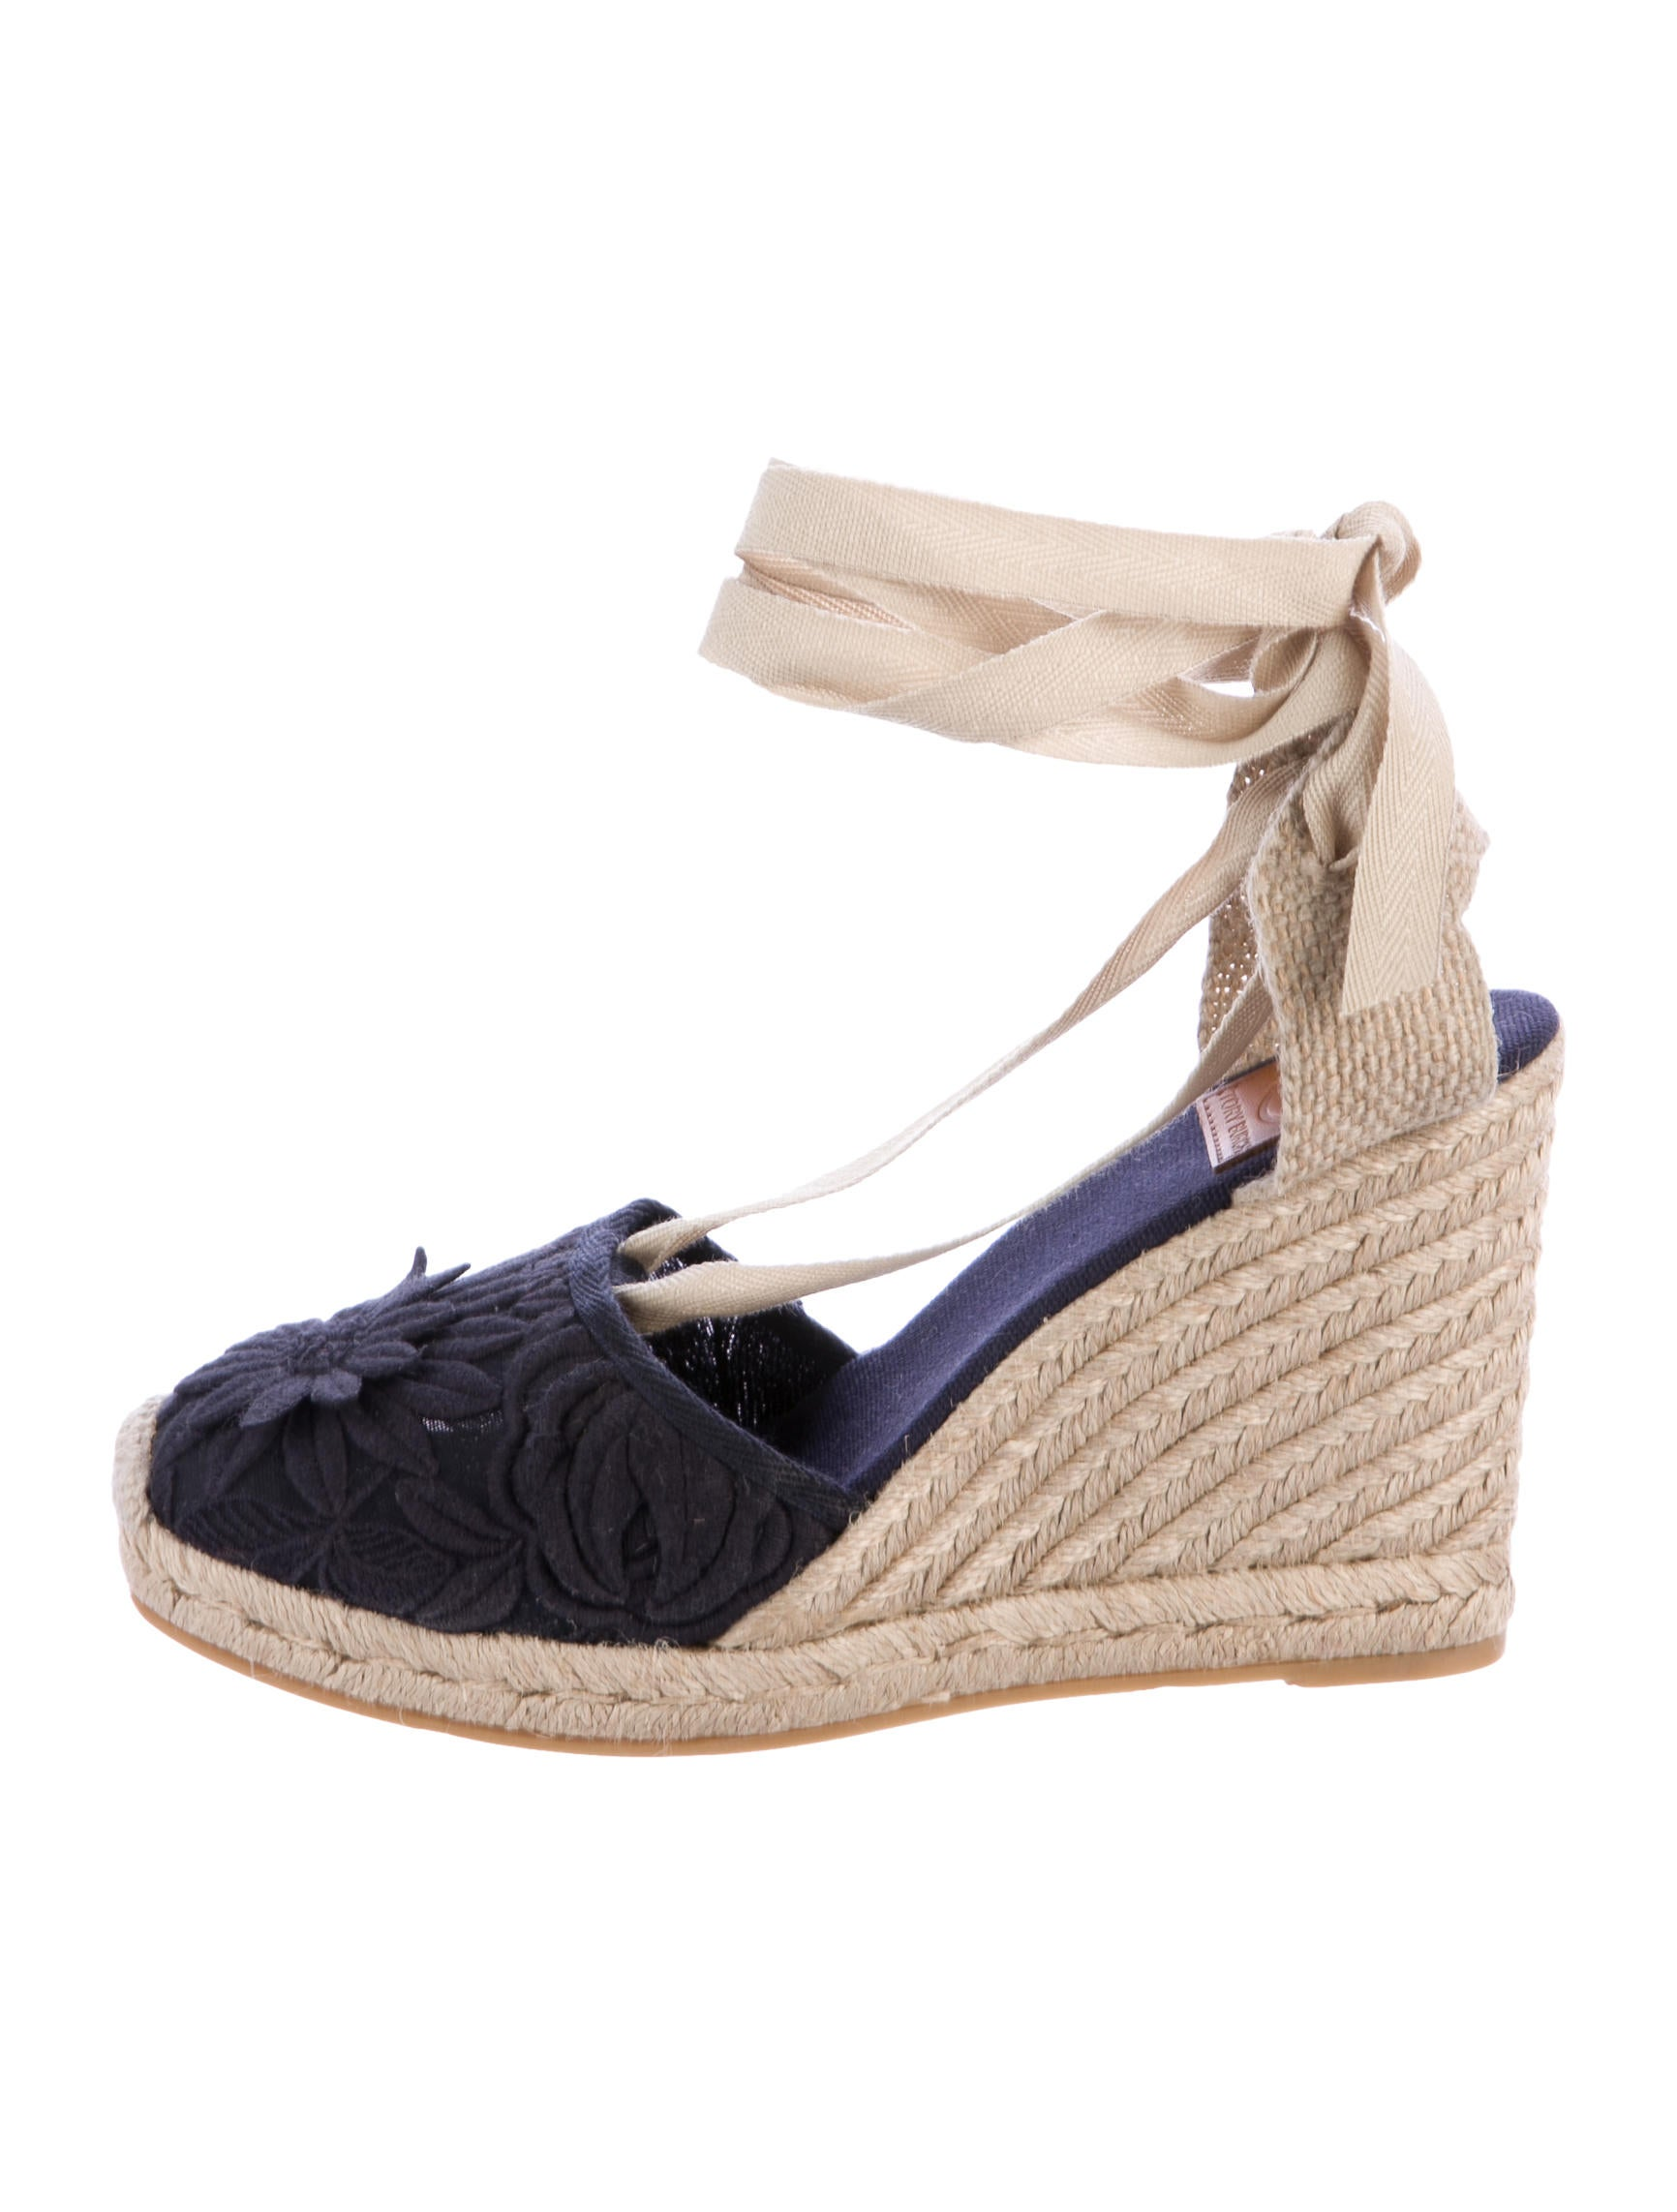 6e7d7a4639c29 Tory Burch Embroidered Espadrille Wedges - Shoes - WTO114024